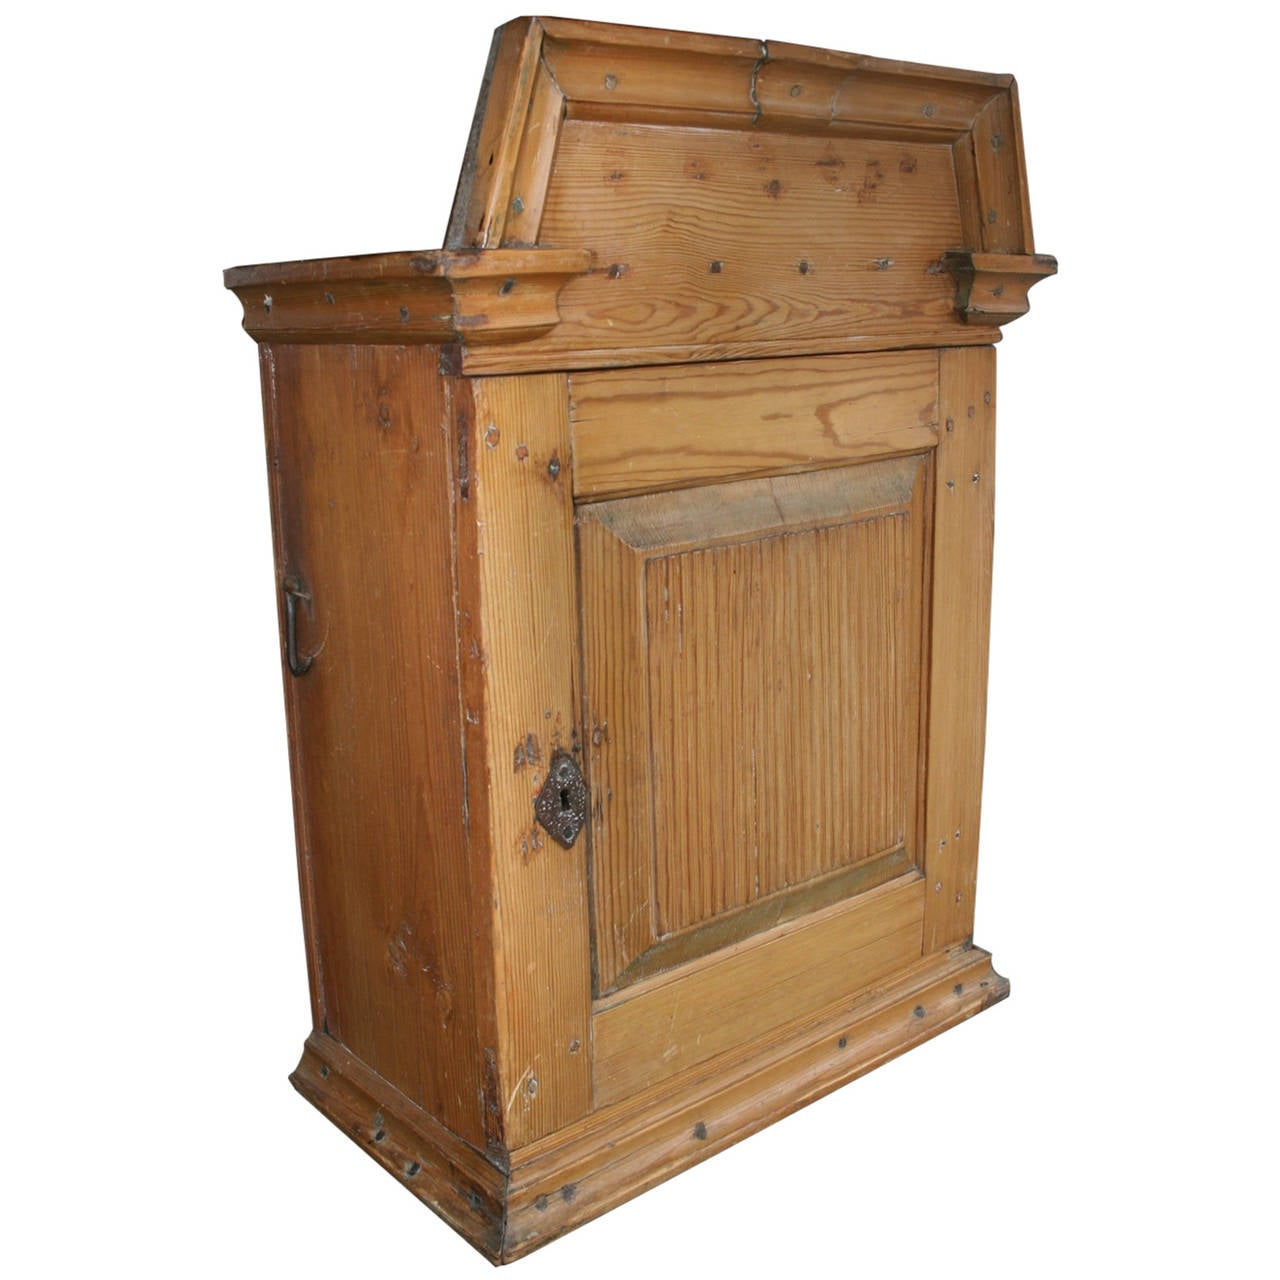 18th Century Country Wall Cabinet from Finland